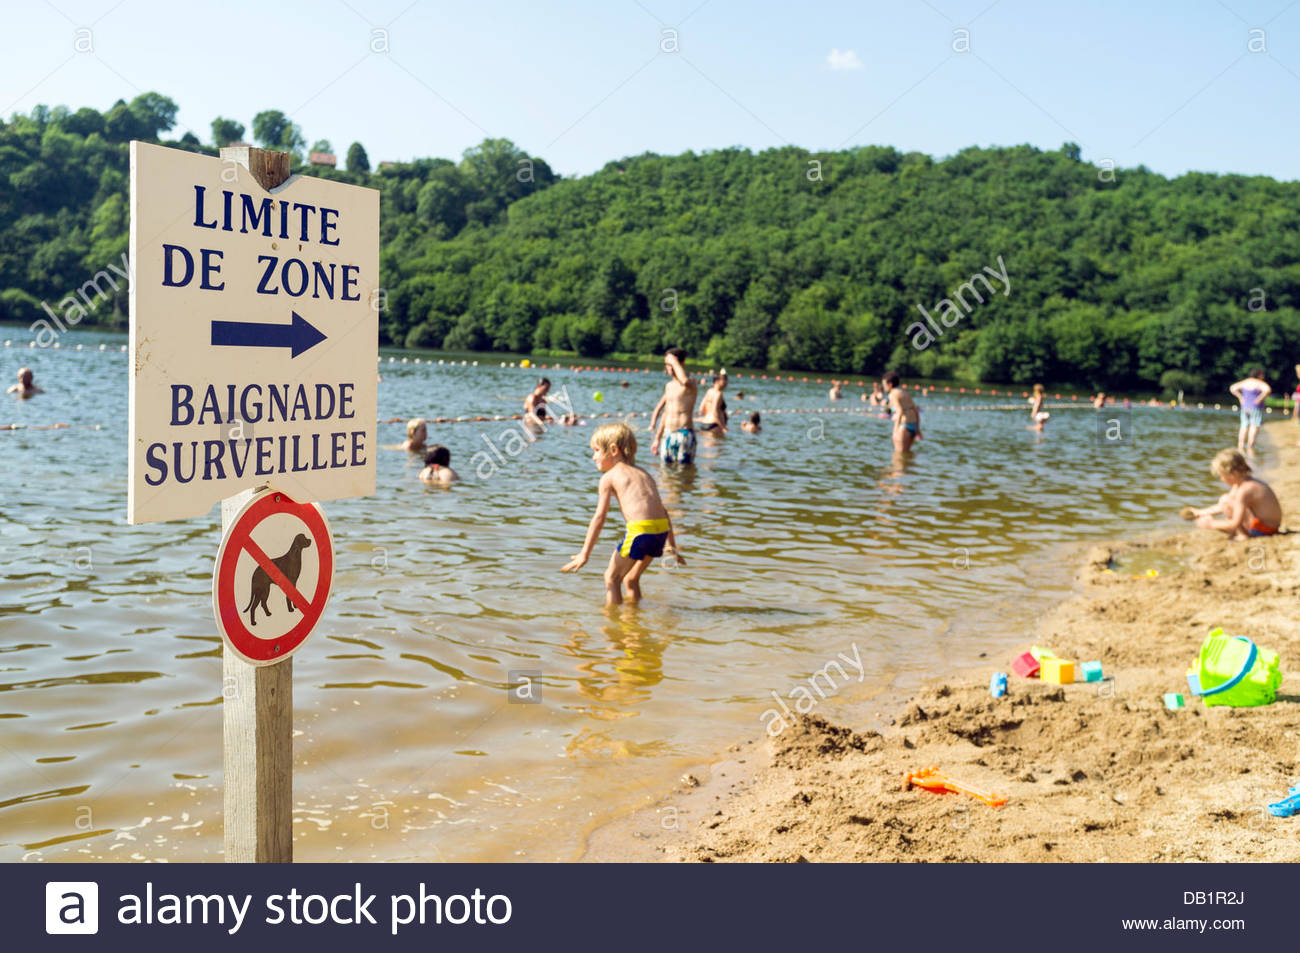 Le Bourg-d'Hem, Limousin, France. 22nd July, 2013. People cooling off at a beach on the Creuse river to escape - Stock Image